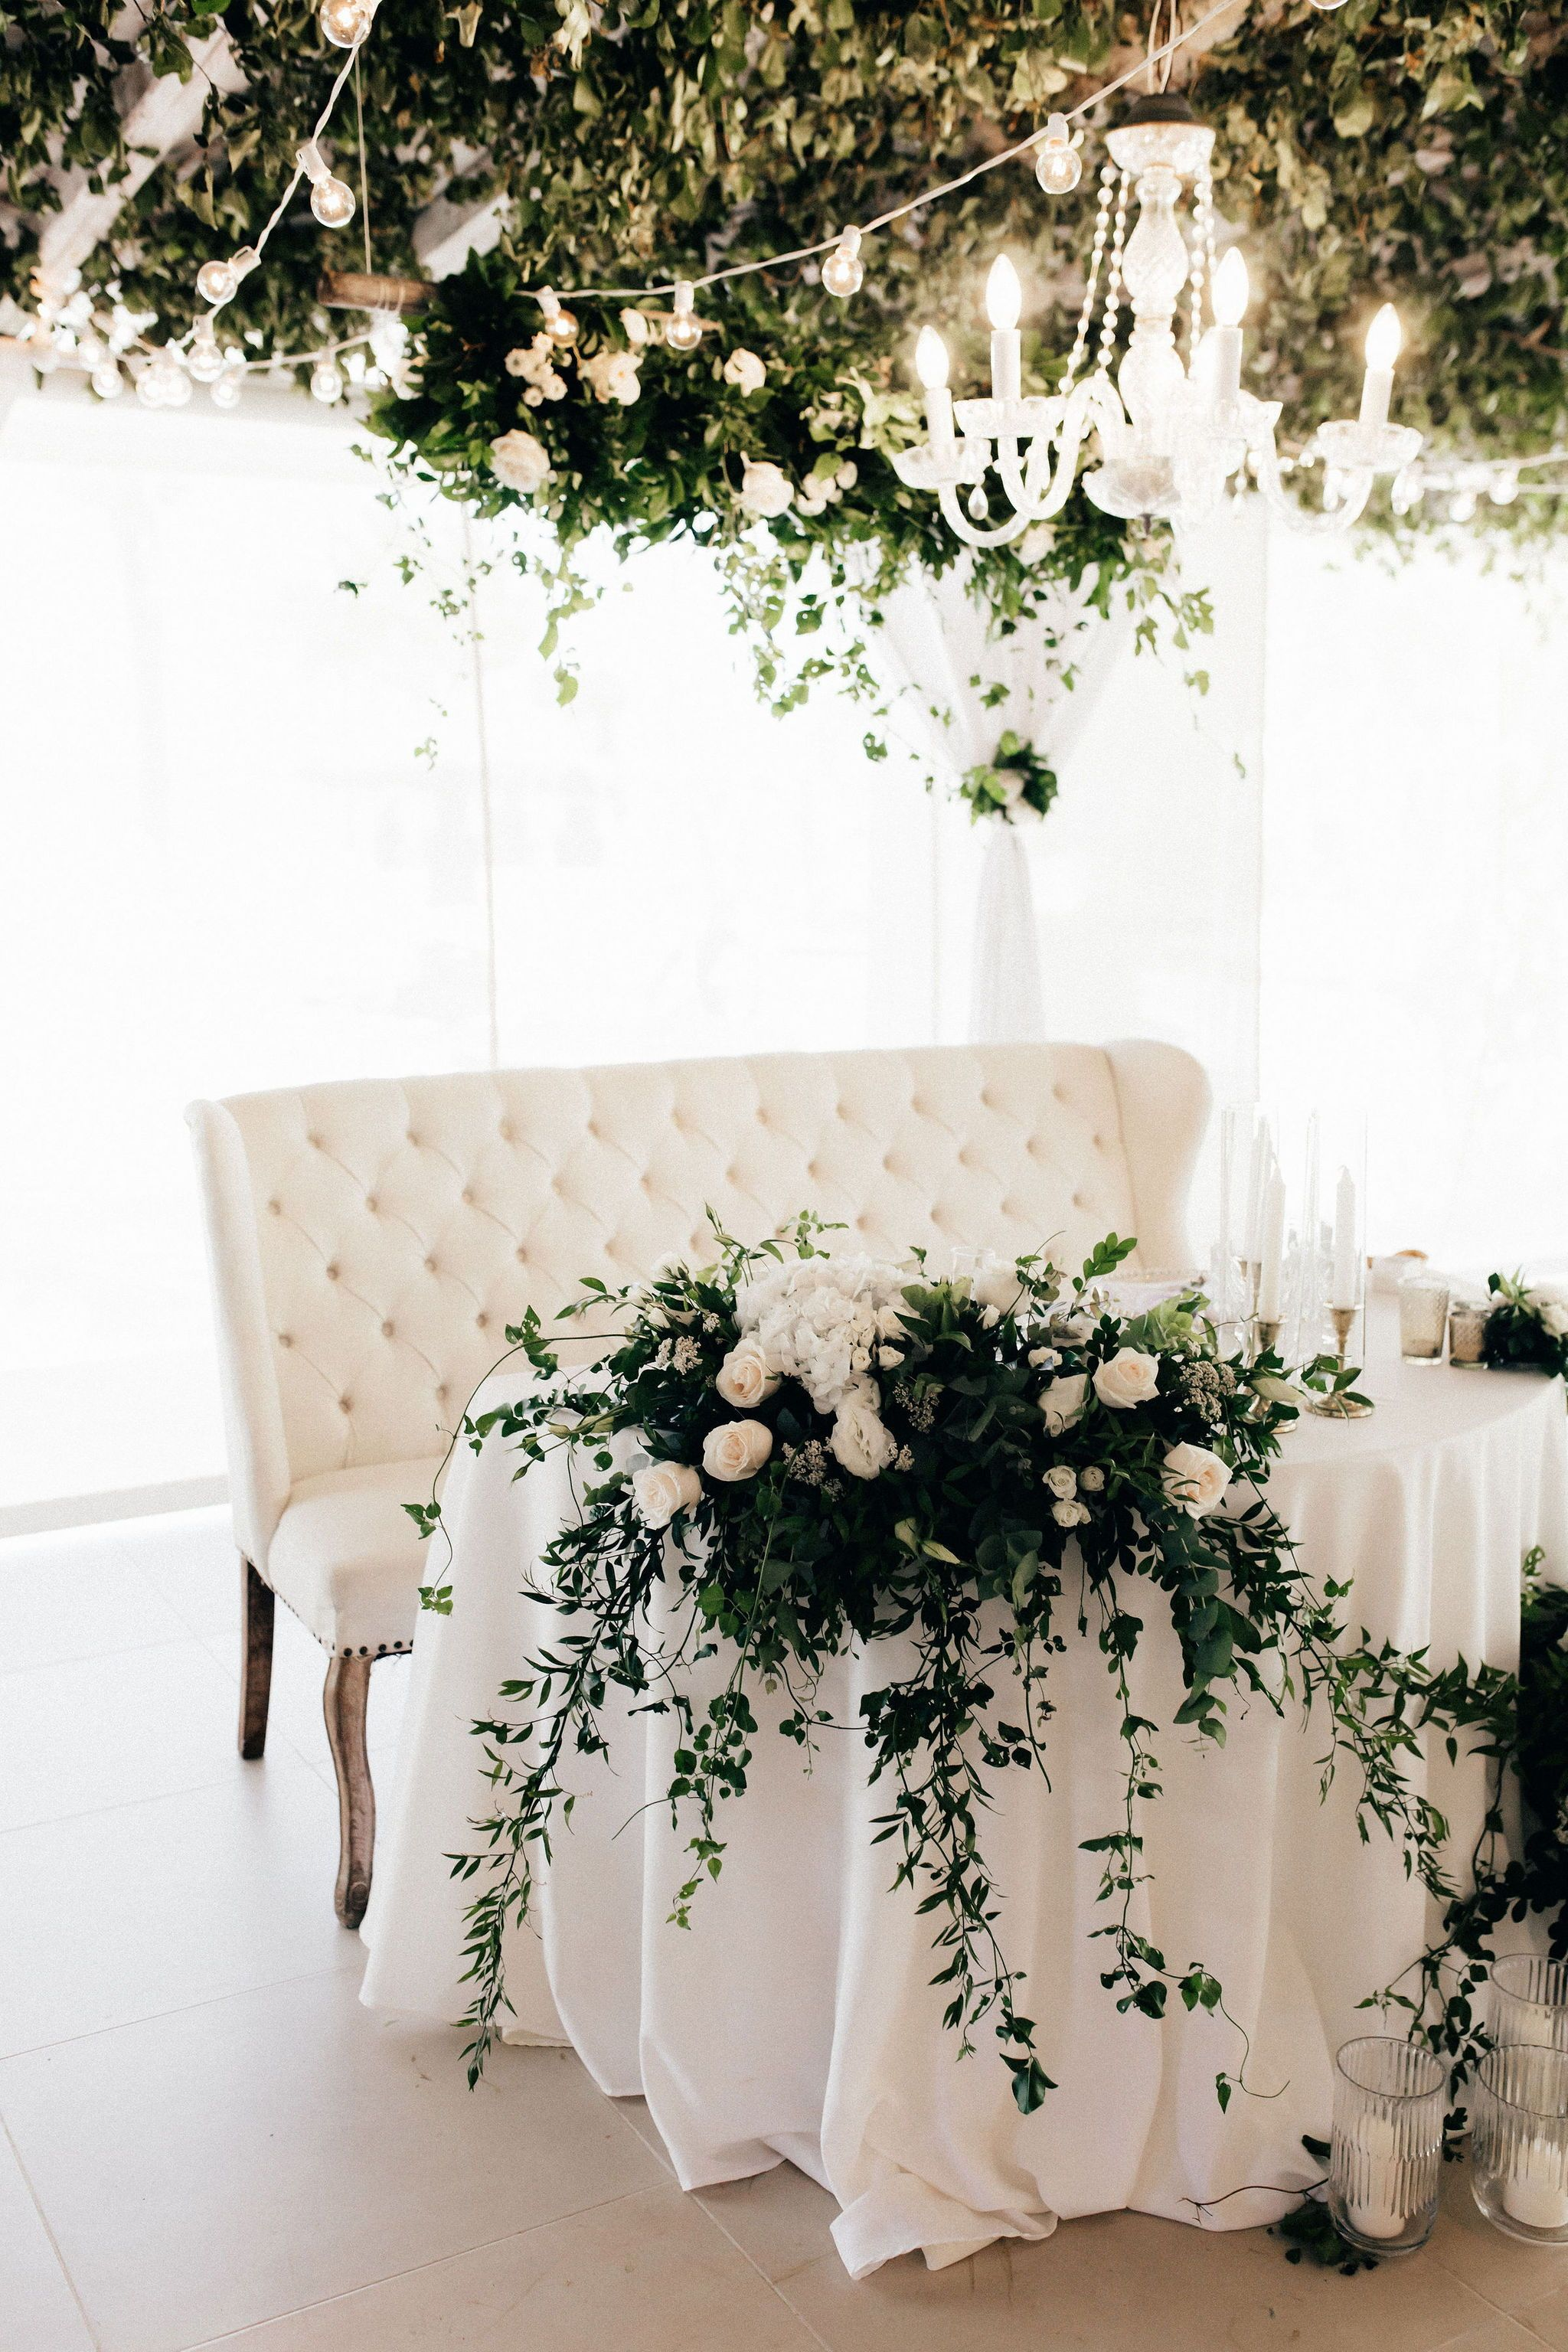 Elegant Bride Groom Love Sofa Make This Unique And Stunning Sweetheart Table So Opulent Bride Groom Table Sweetheart Table Wedding Brides Table Decorations